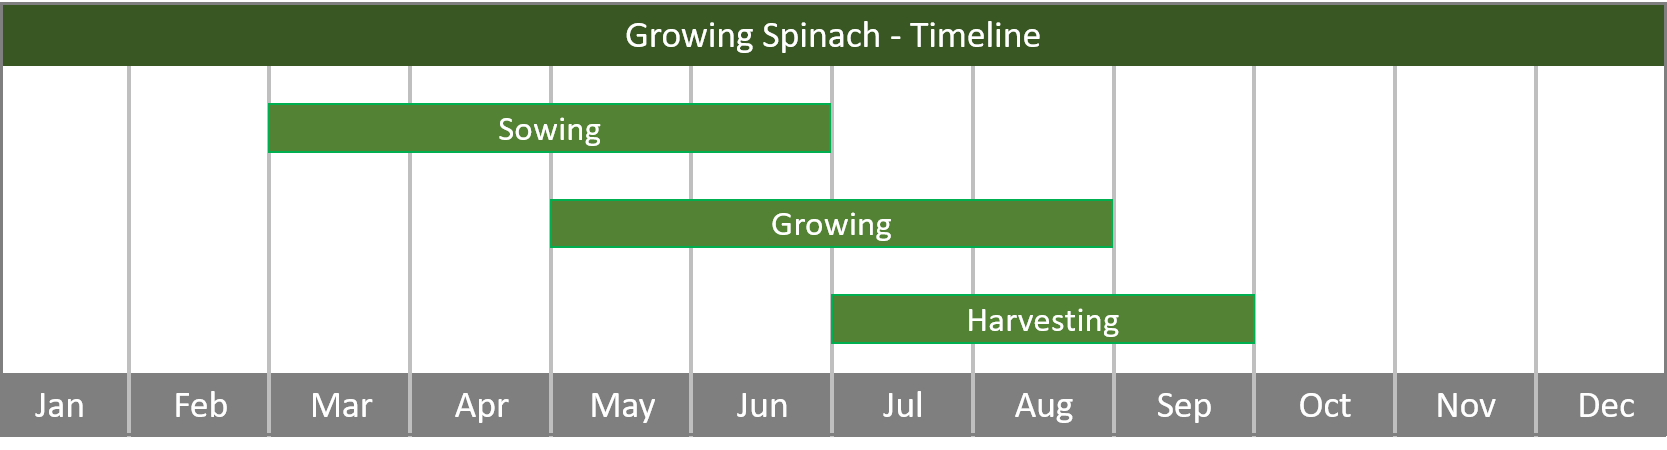 how to grow spinach from seed to harvest at home timeline